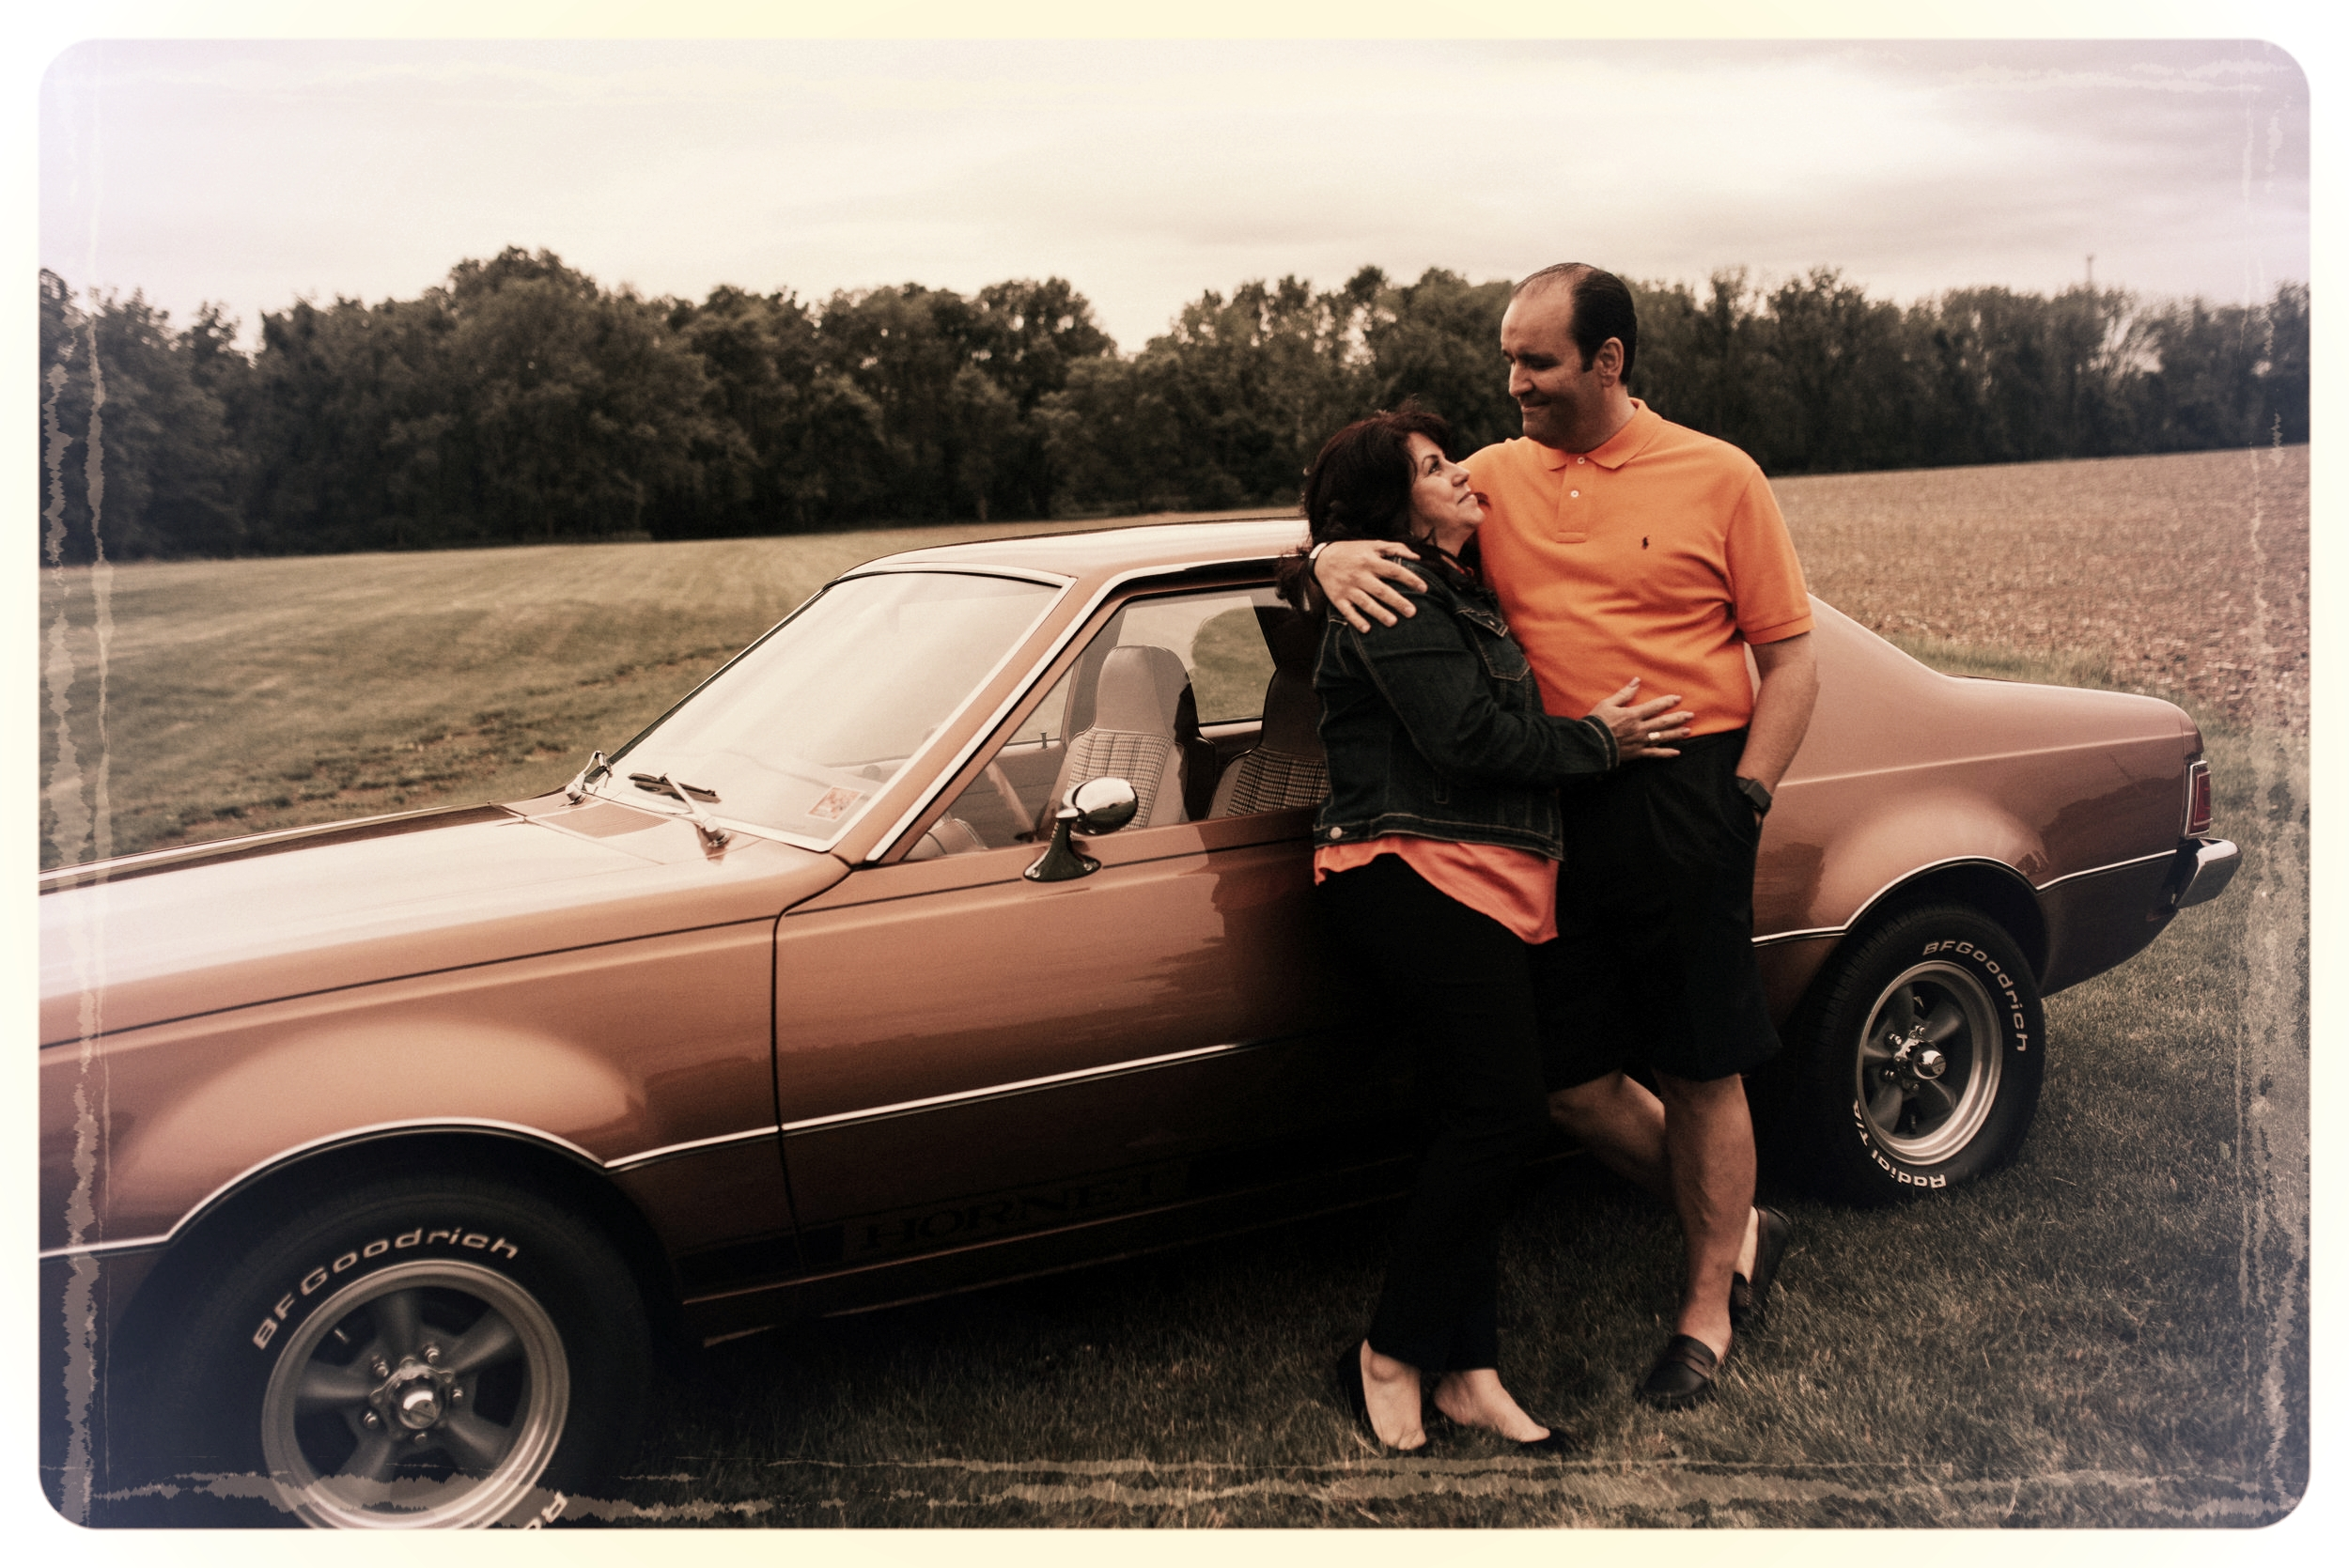 Mary & Alex, the older couple in the story, posing for a quick picture next to the 1973 AMC Hornet on set of the video shoot.